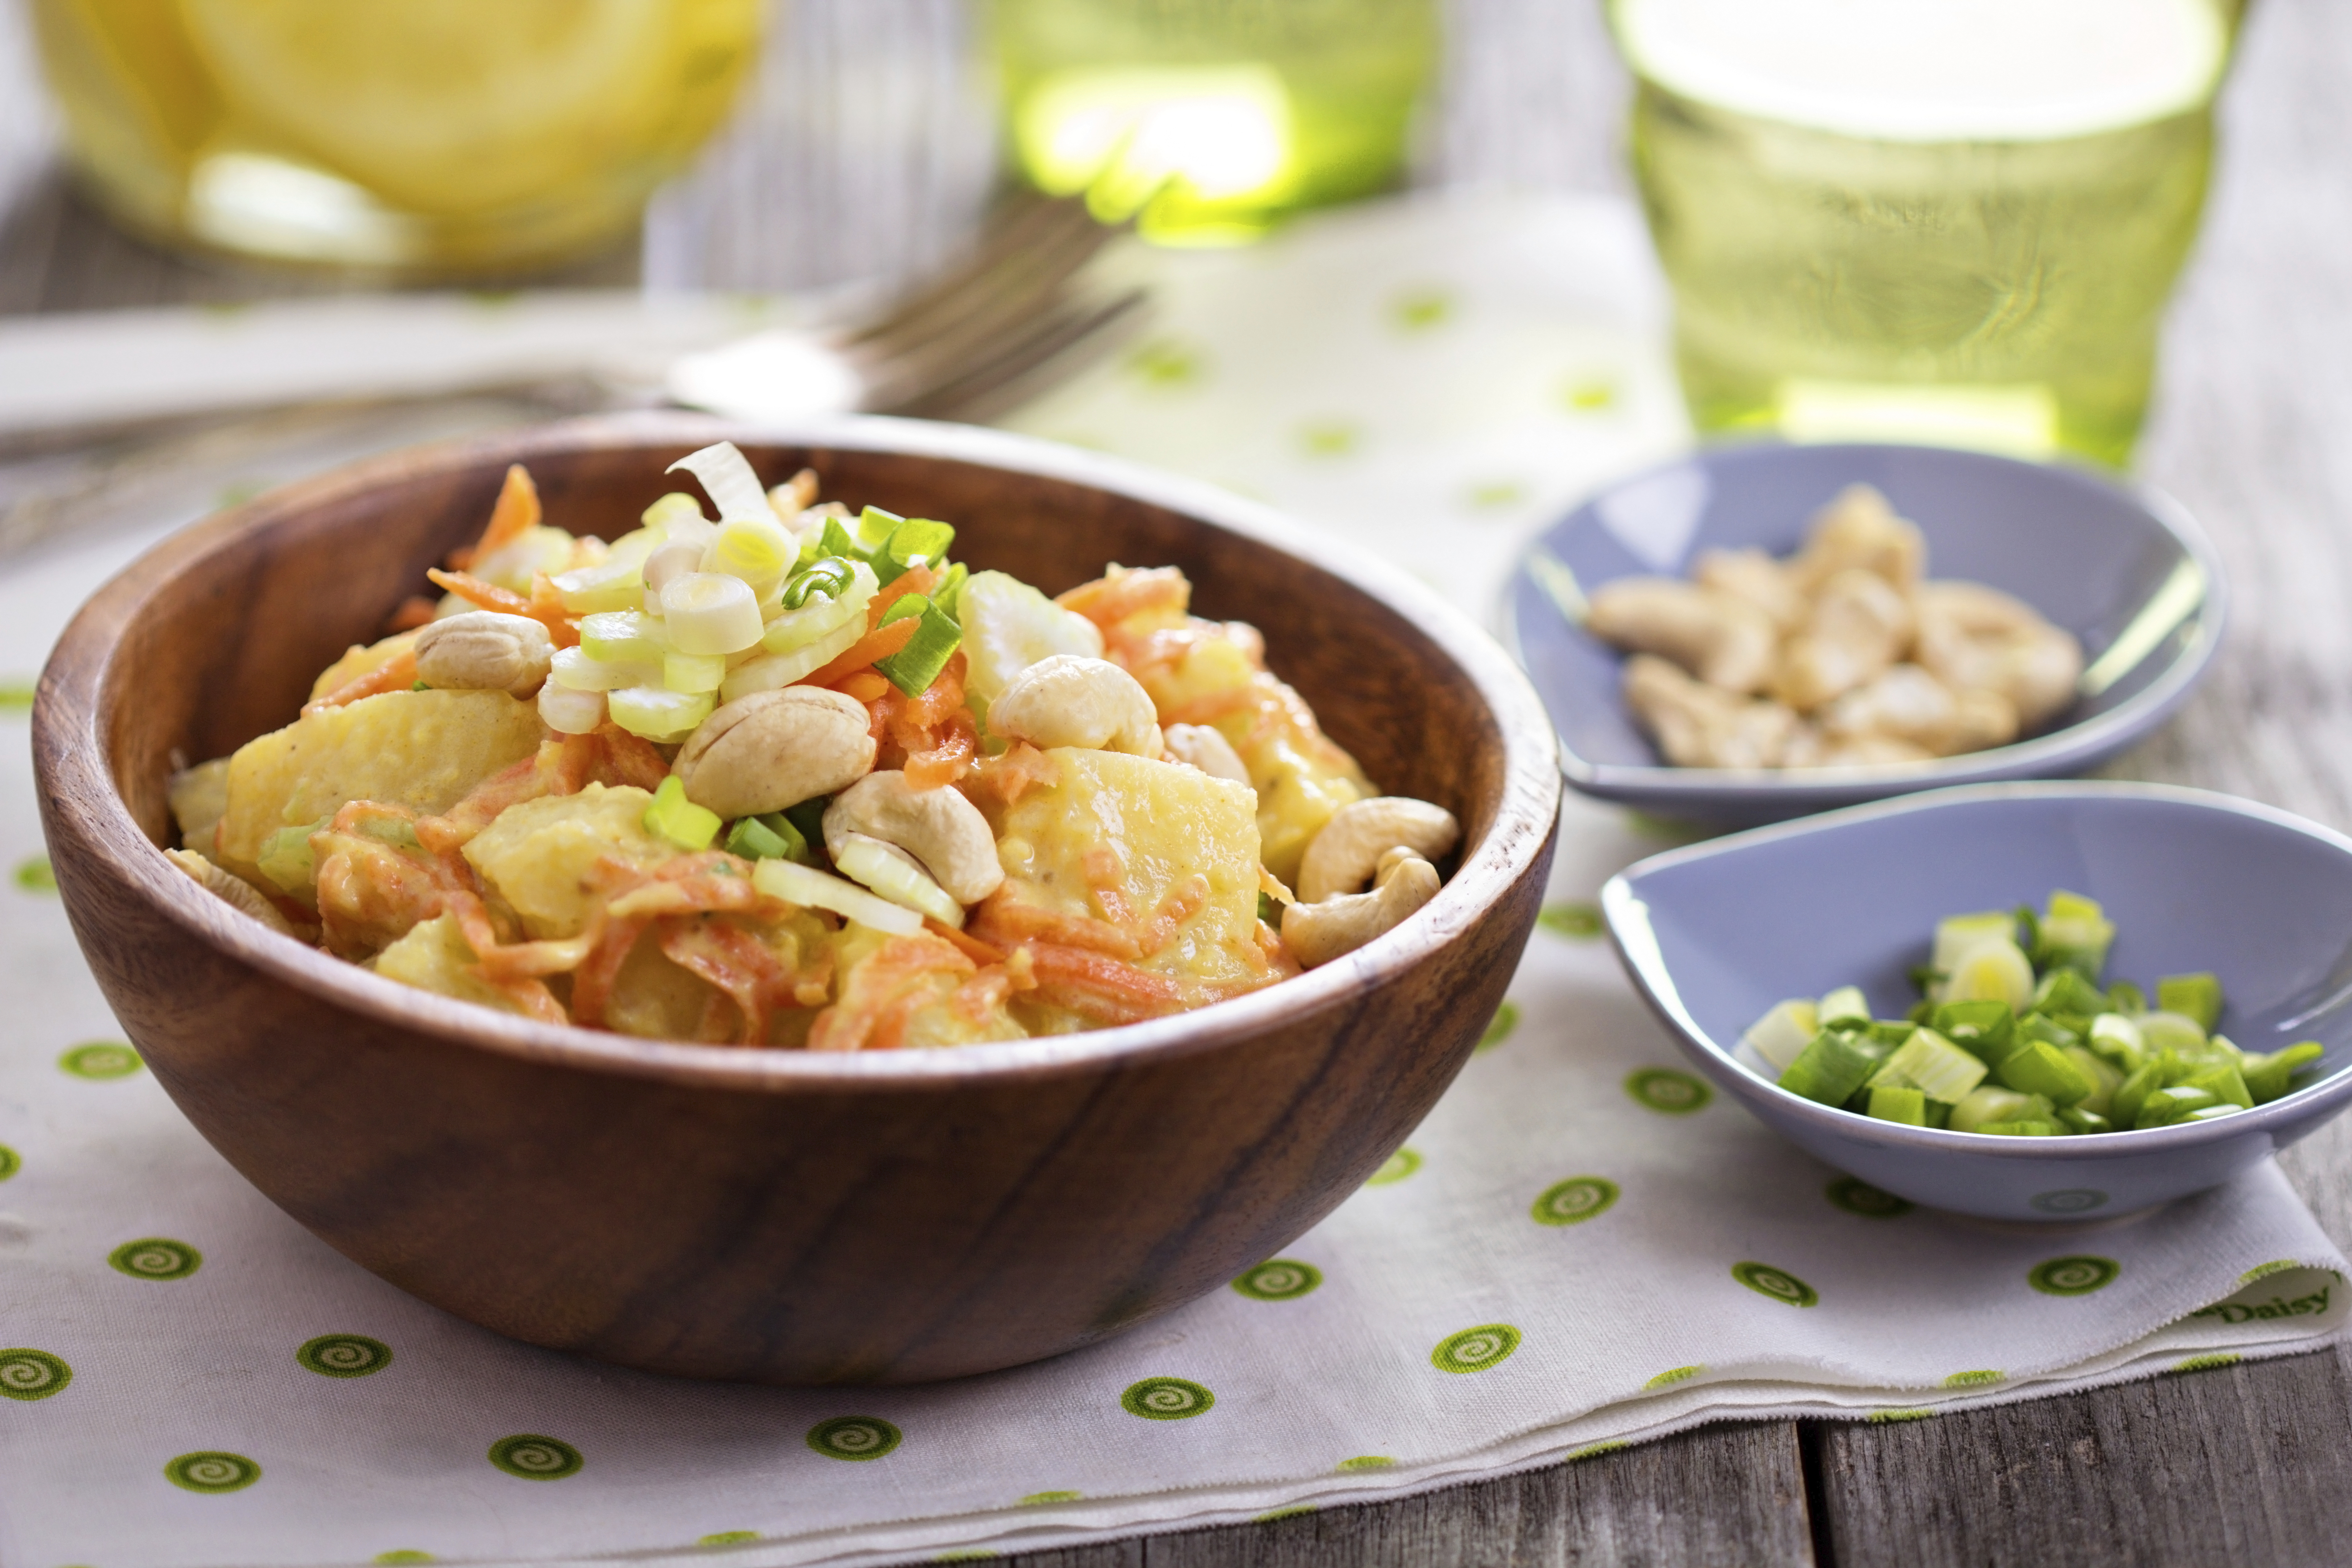 Potato salad with carrot and celery